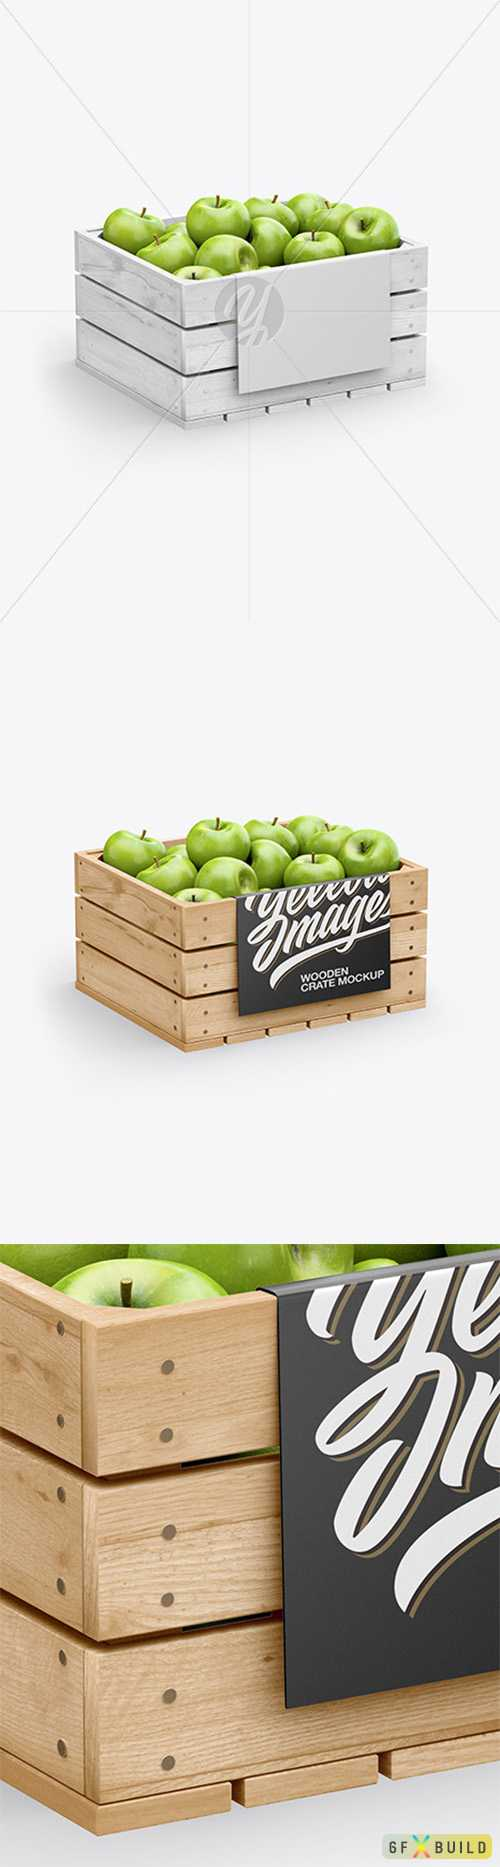 Crate with Green Apples Mockup 78464 TIF